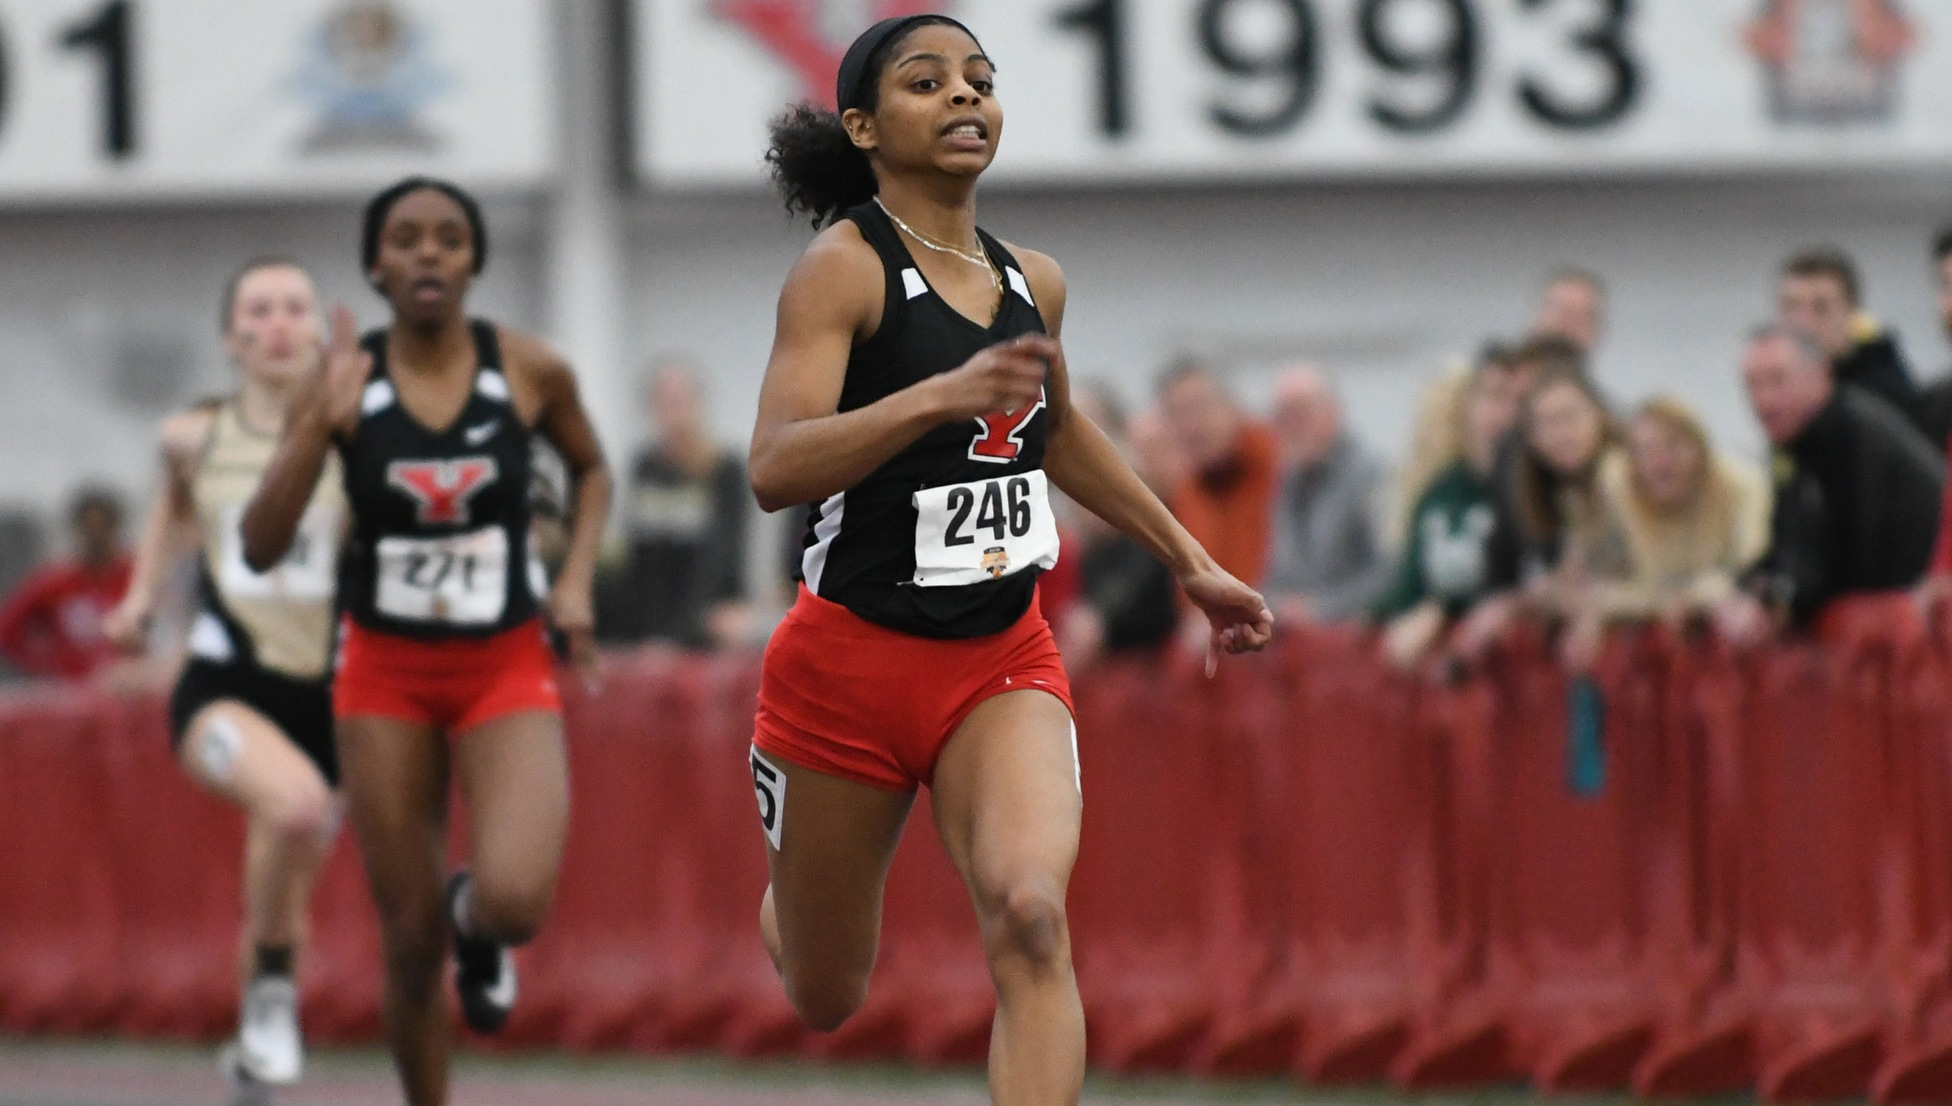 Track & Field Hosts 29 Schools For YSU Collegiate Invitational